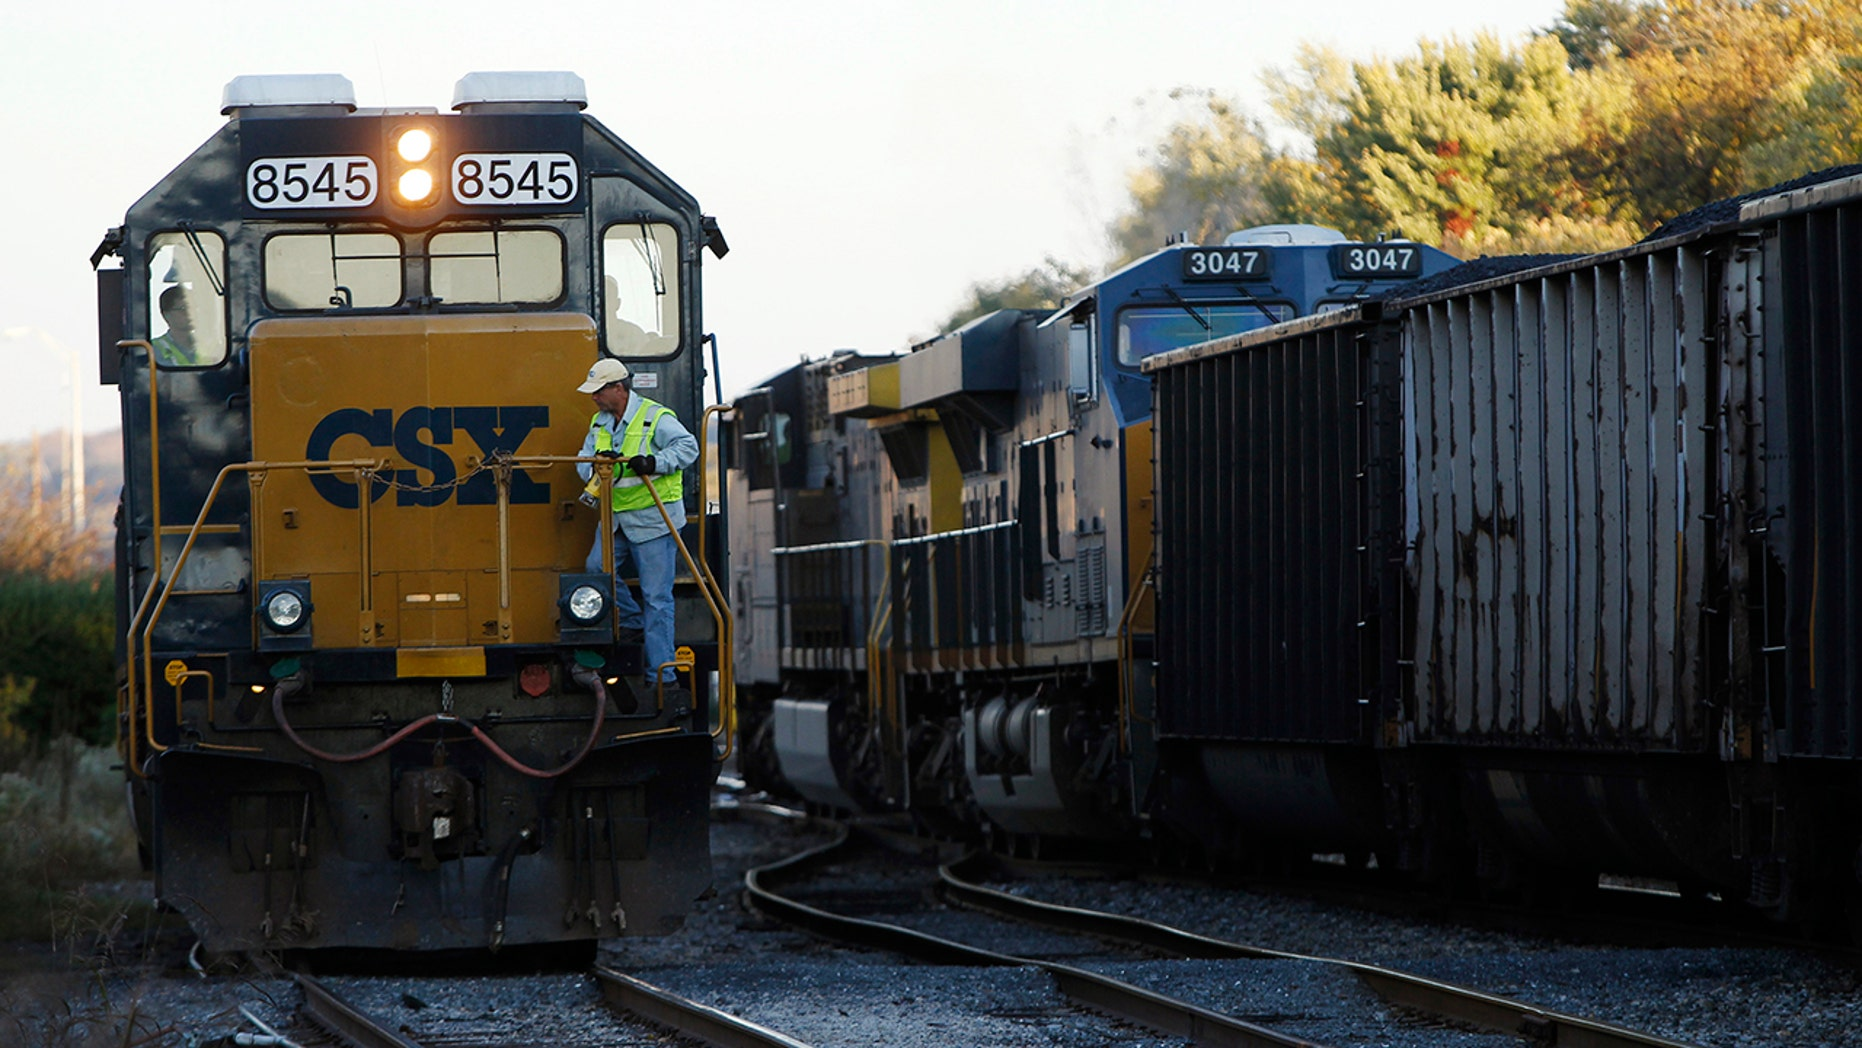 A CSX coal train, right, moves past an idling CSX engine at the switchyard in Brunswick, Md., Oct. 16, 2012.